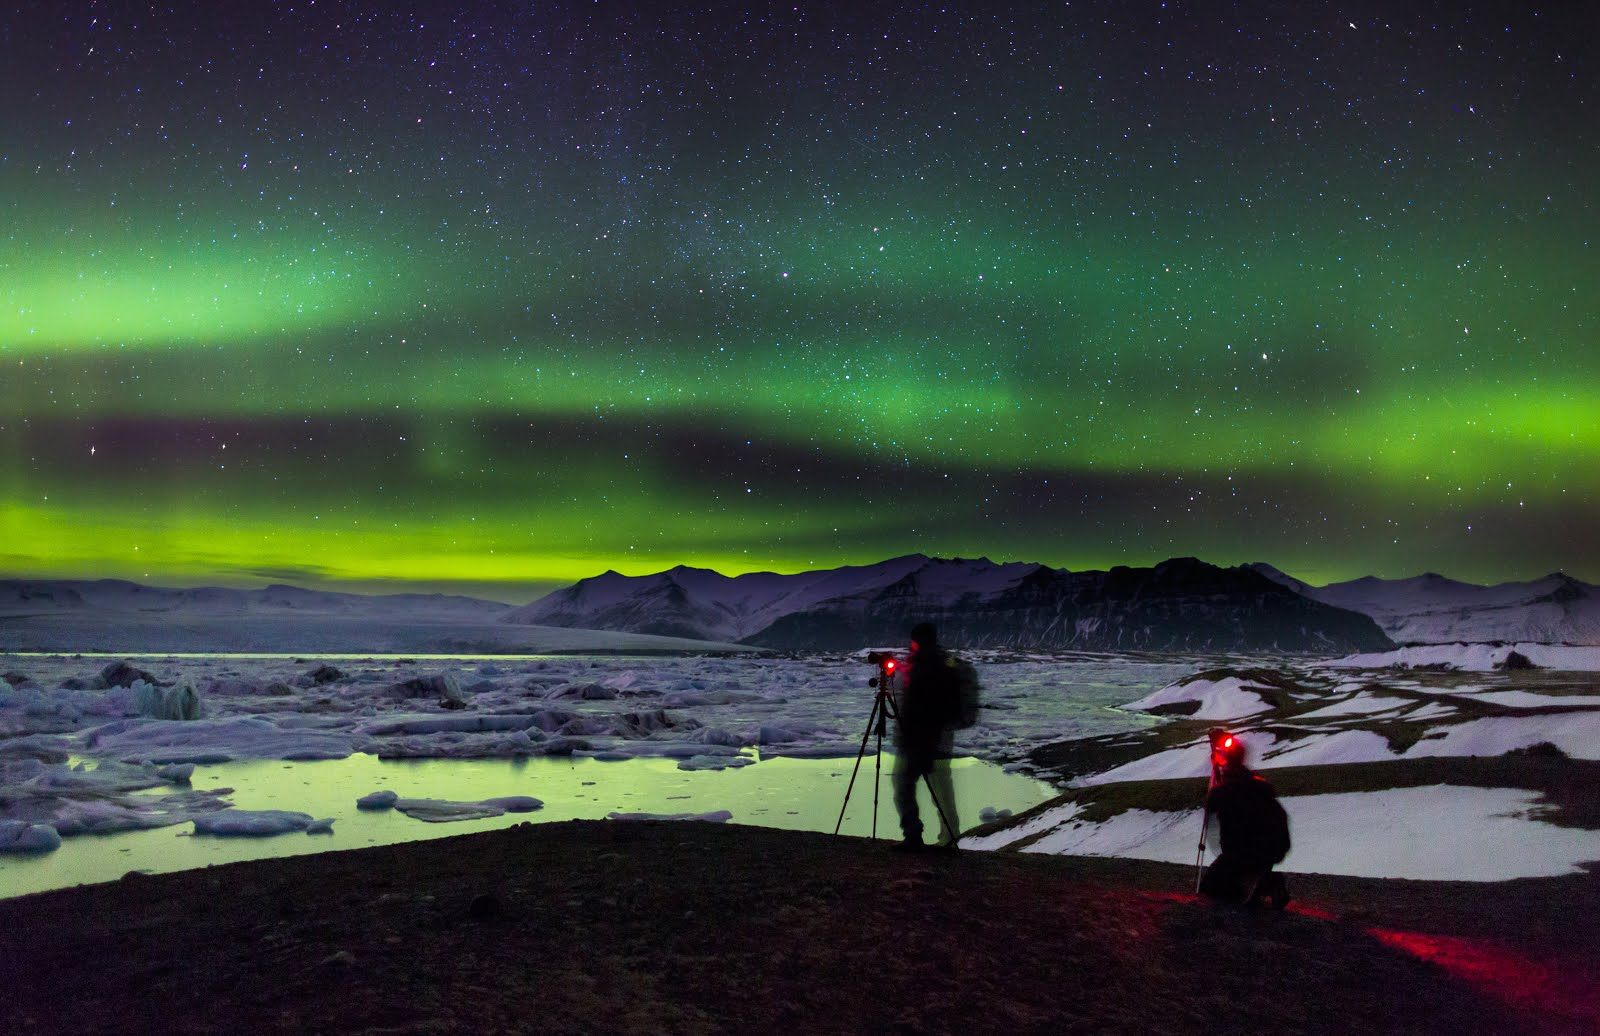 Chasing Northern Lights in Iceland